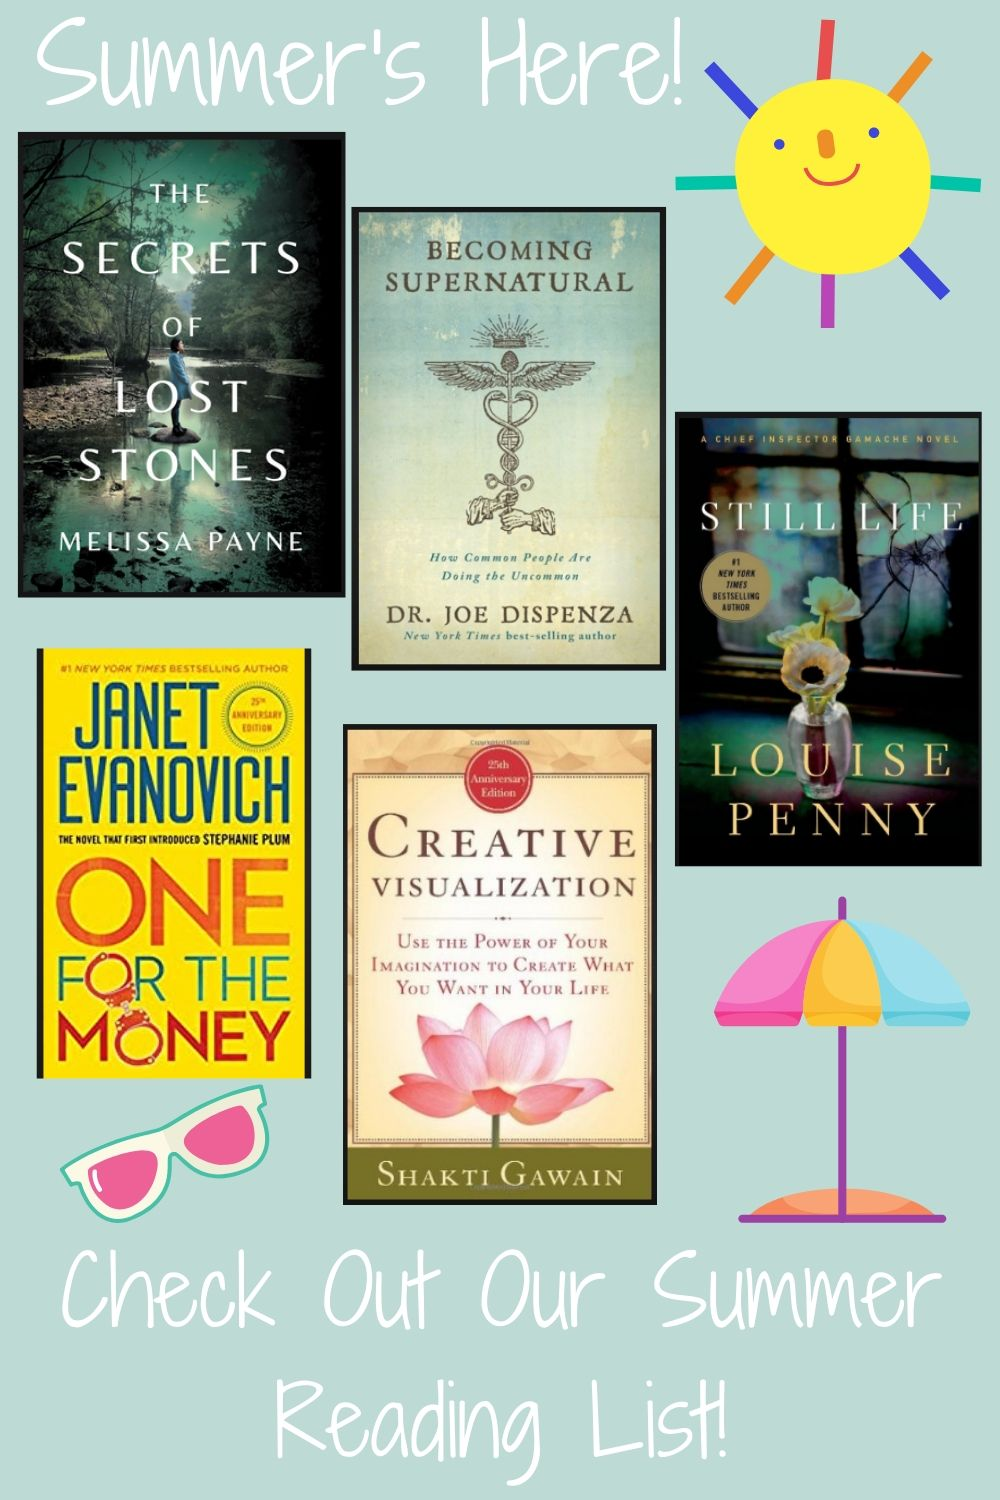 Summer's Here! So Check Out Our Summer Reading List!